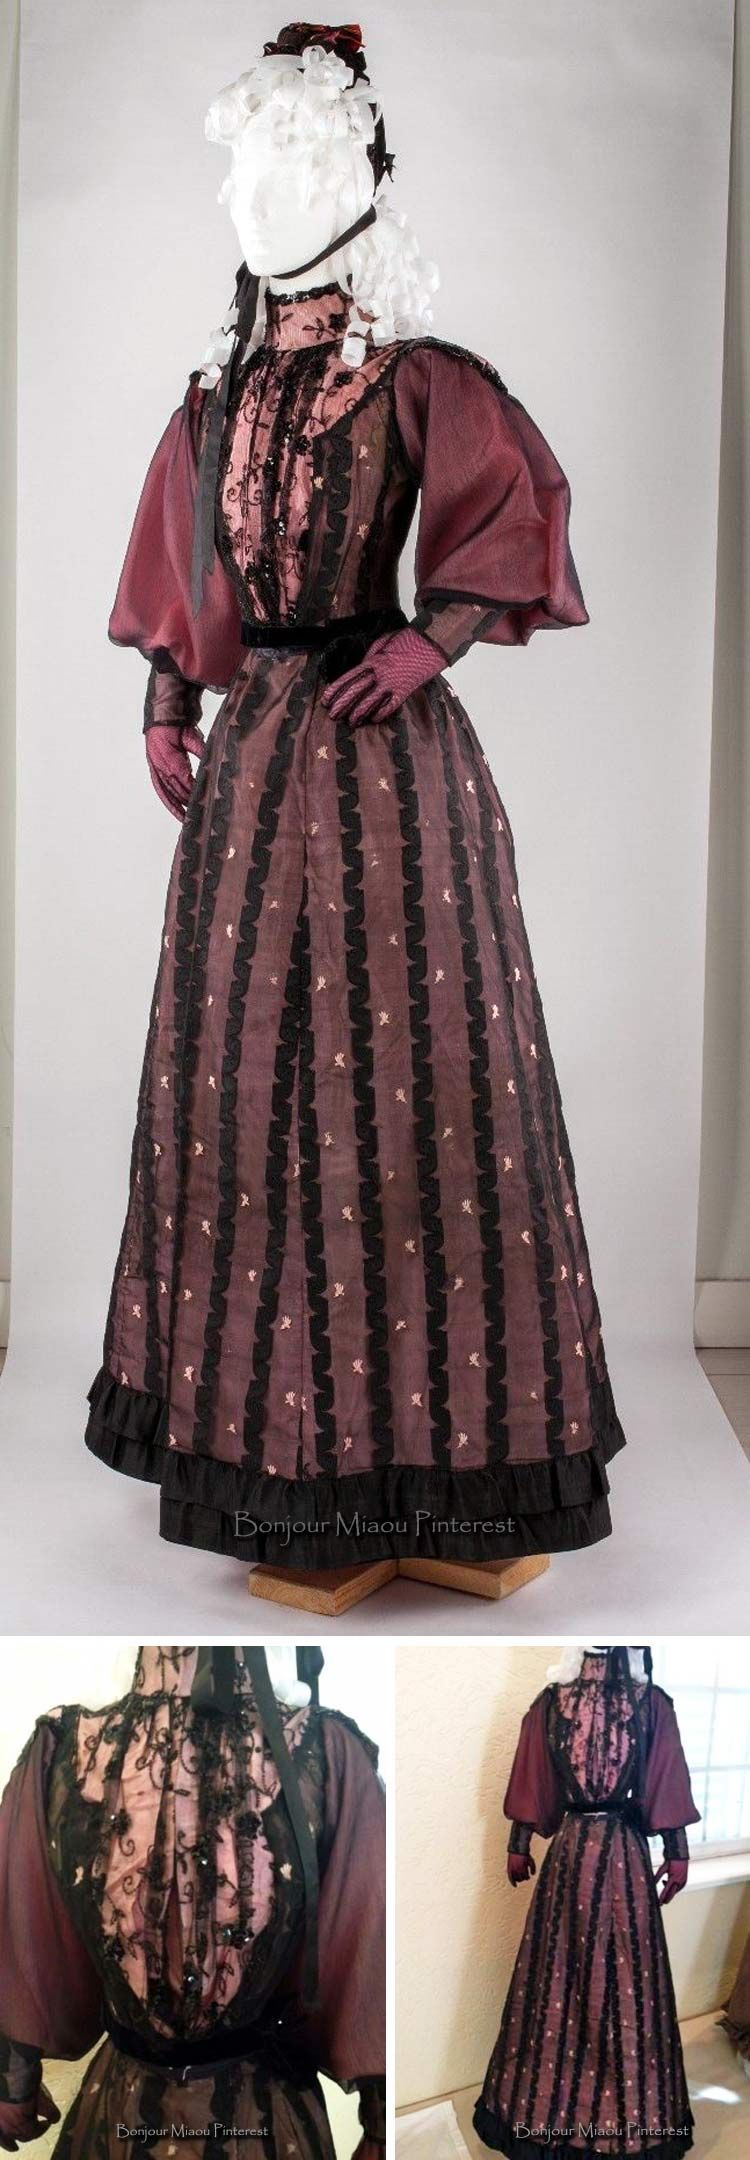 Casual Dress 1890 1895 Years England Historical Dresses Victorian Style Clothing Victorian Fashion [ 2160 x 750 Pixel ]